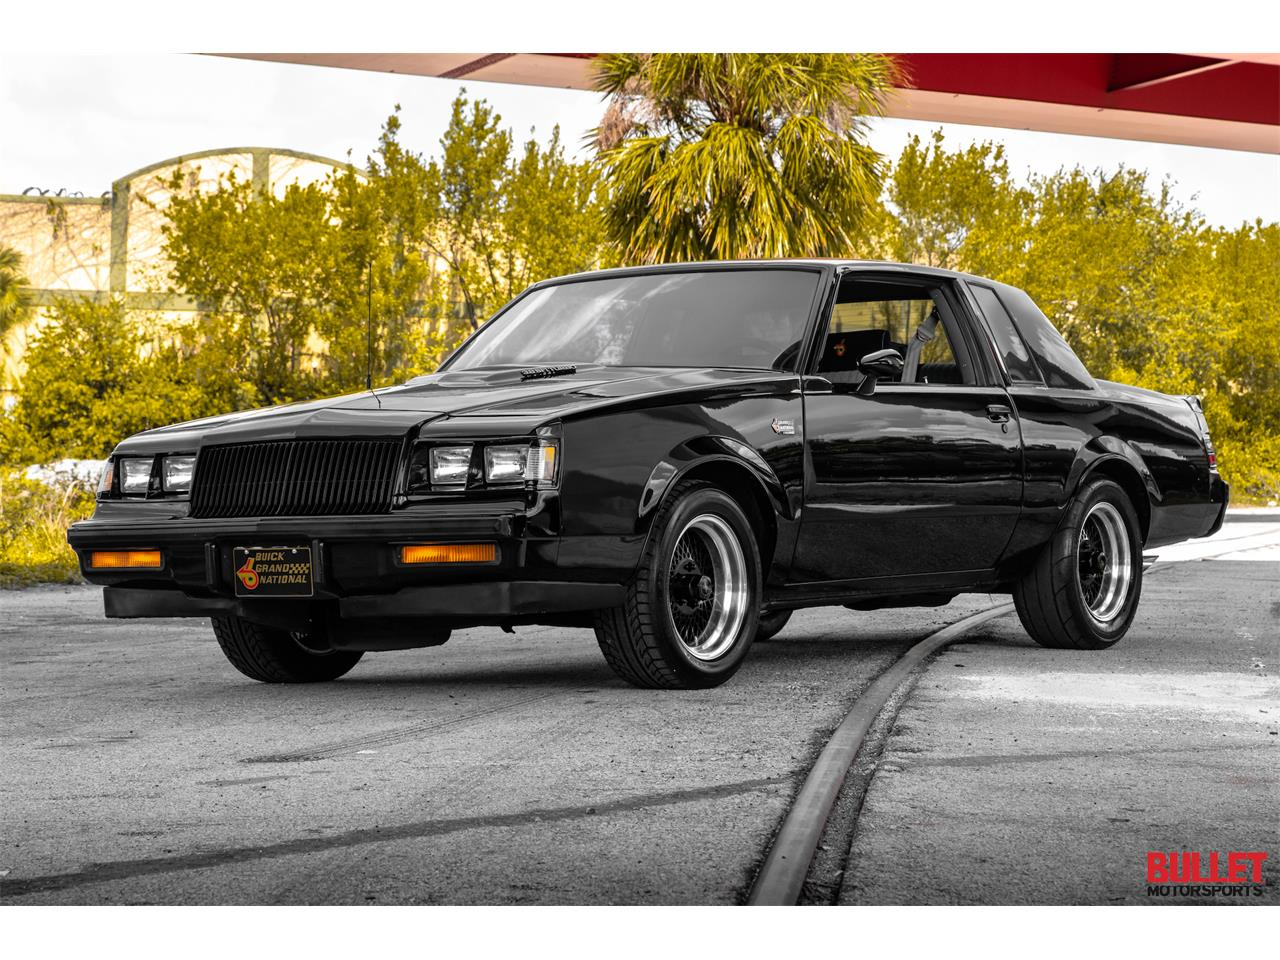 Large Picture of '87 Buick Grand National - $30,550.00 - PSK7